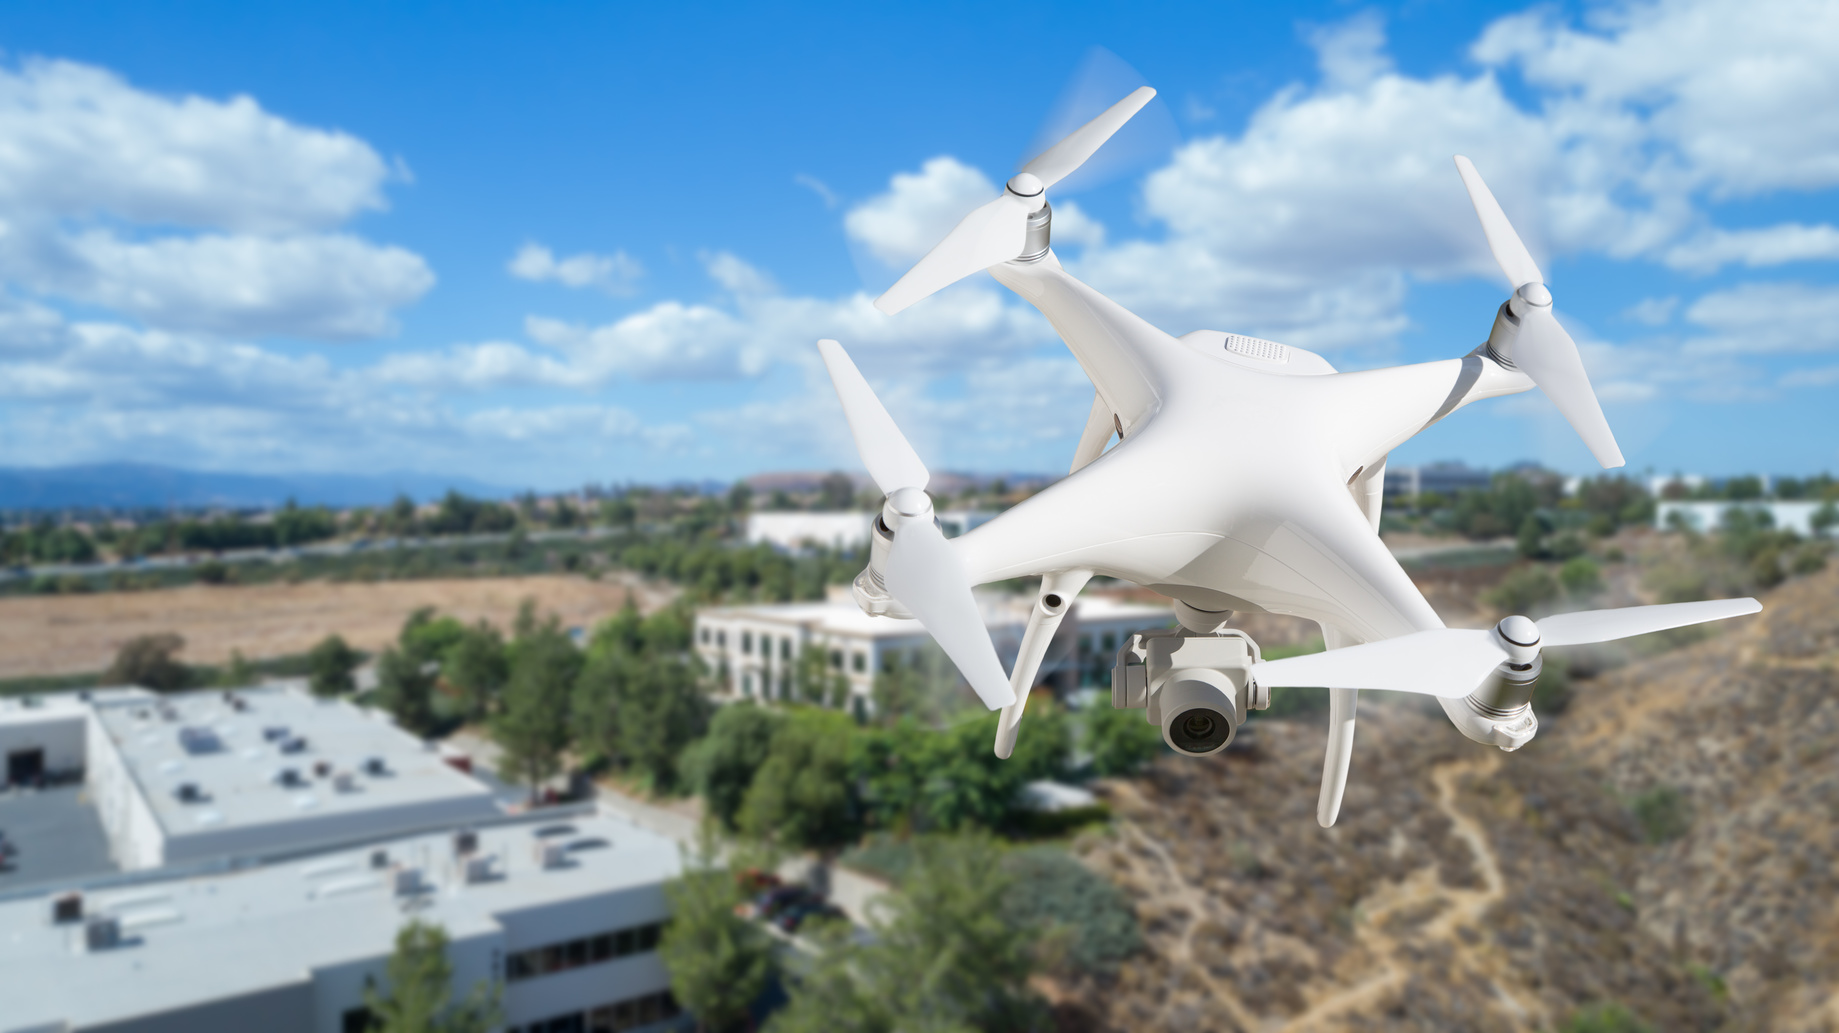 Unmanned Aircraft System (UAV) Quadcopter Drone In The Air Over Commercial Buildings. emerging technology on commercial real estate